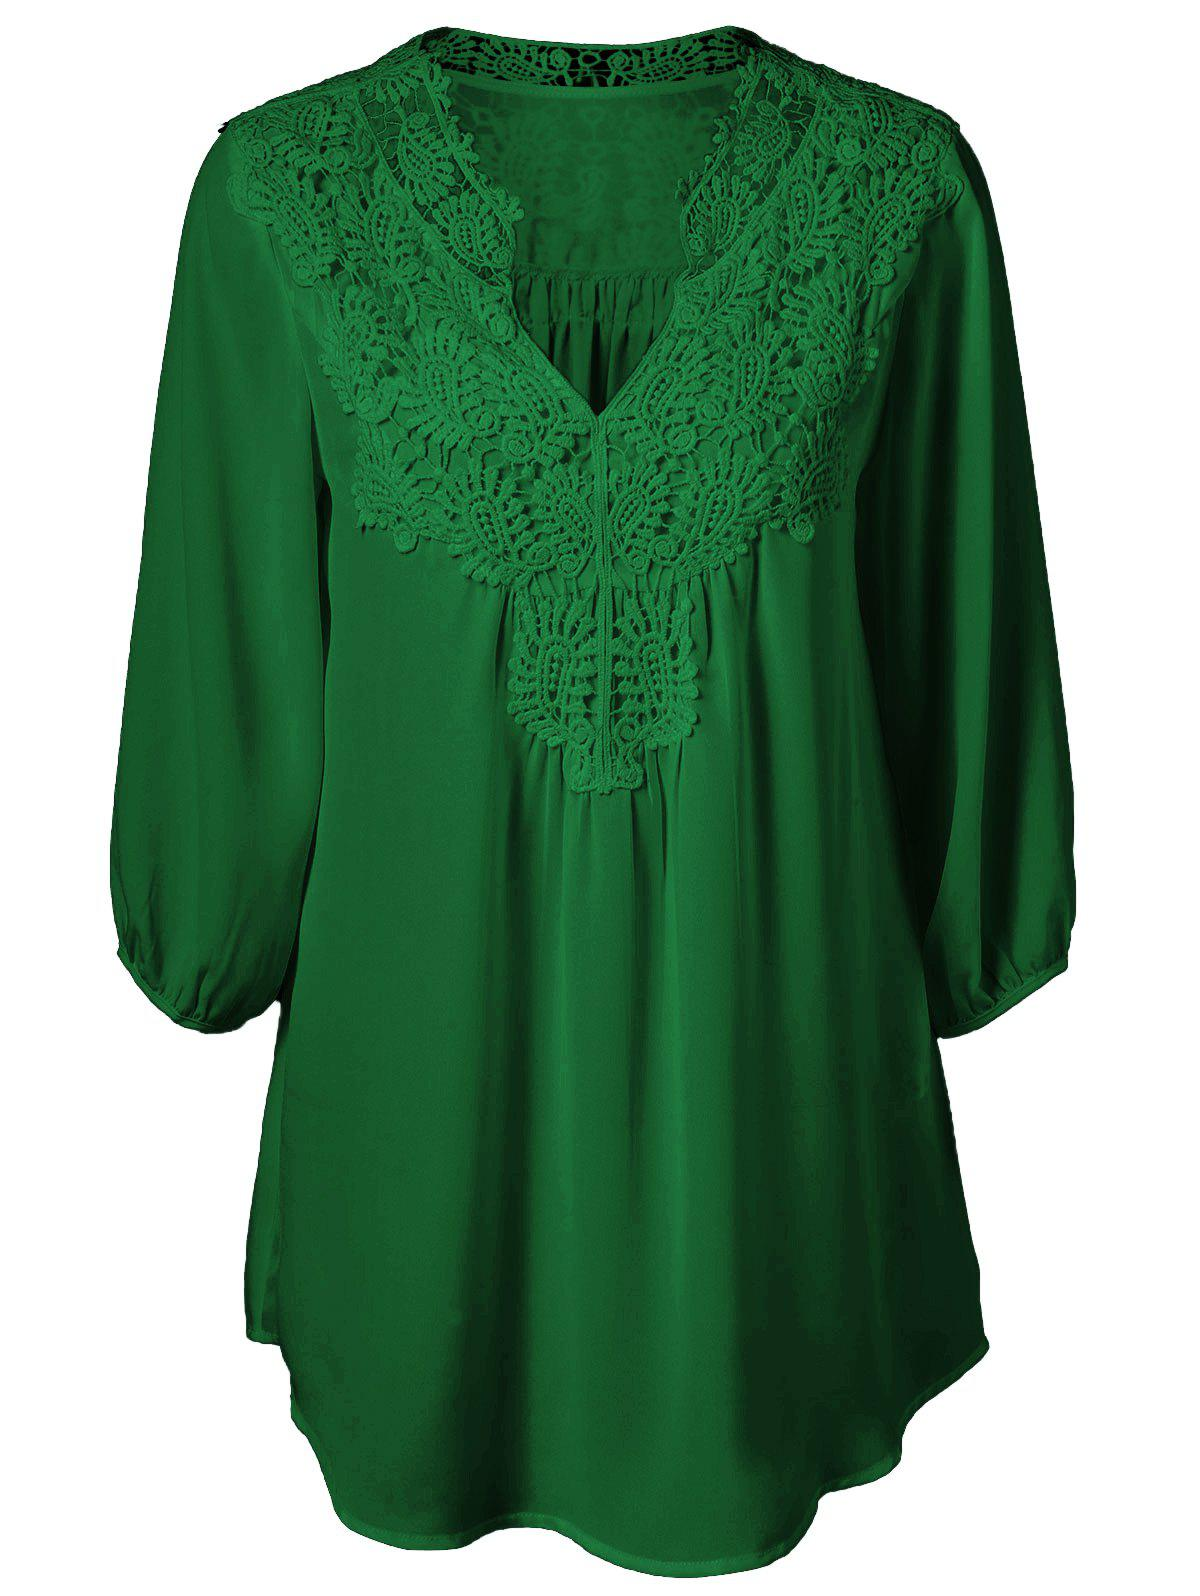 Plus Size Sweet Crochet Spliced Tunic BlouseWOMEN<br><br>Size: XL; Color: DEEP GREEN; Material: Polyester; Shirt Length: Long; Sleeve Length: Three Quarter; Collar: V-Neck; Style: Casual; Season: Summer; Pattern Type: Patchwork; Weight: 0.2310kg; Package Contents: 1 x Blouse;